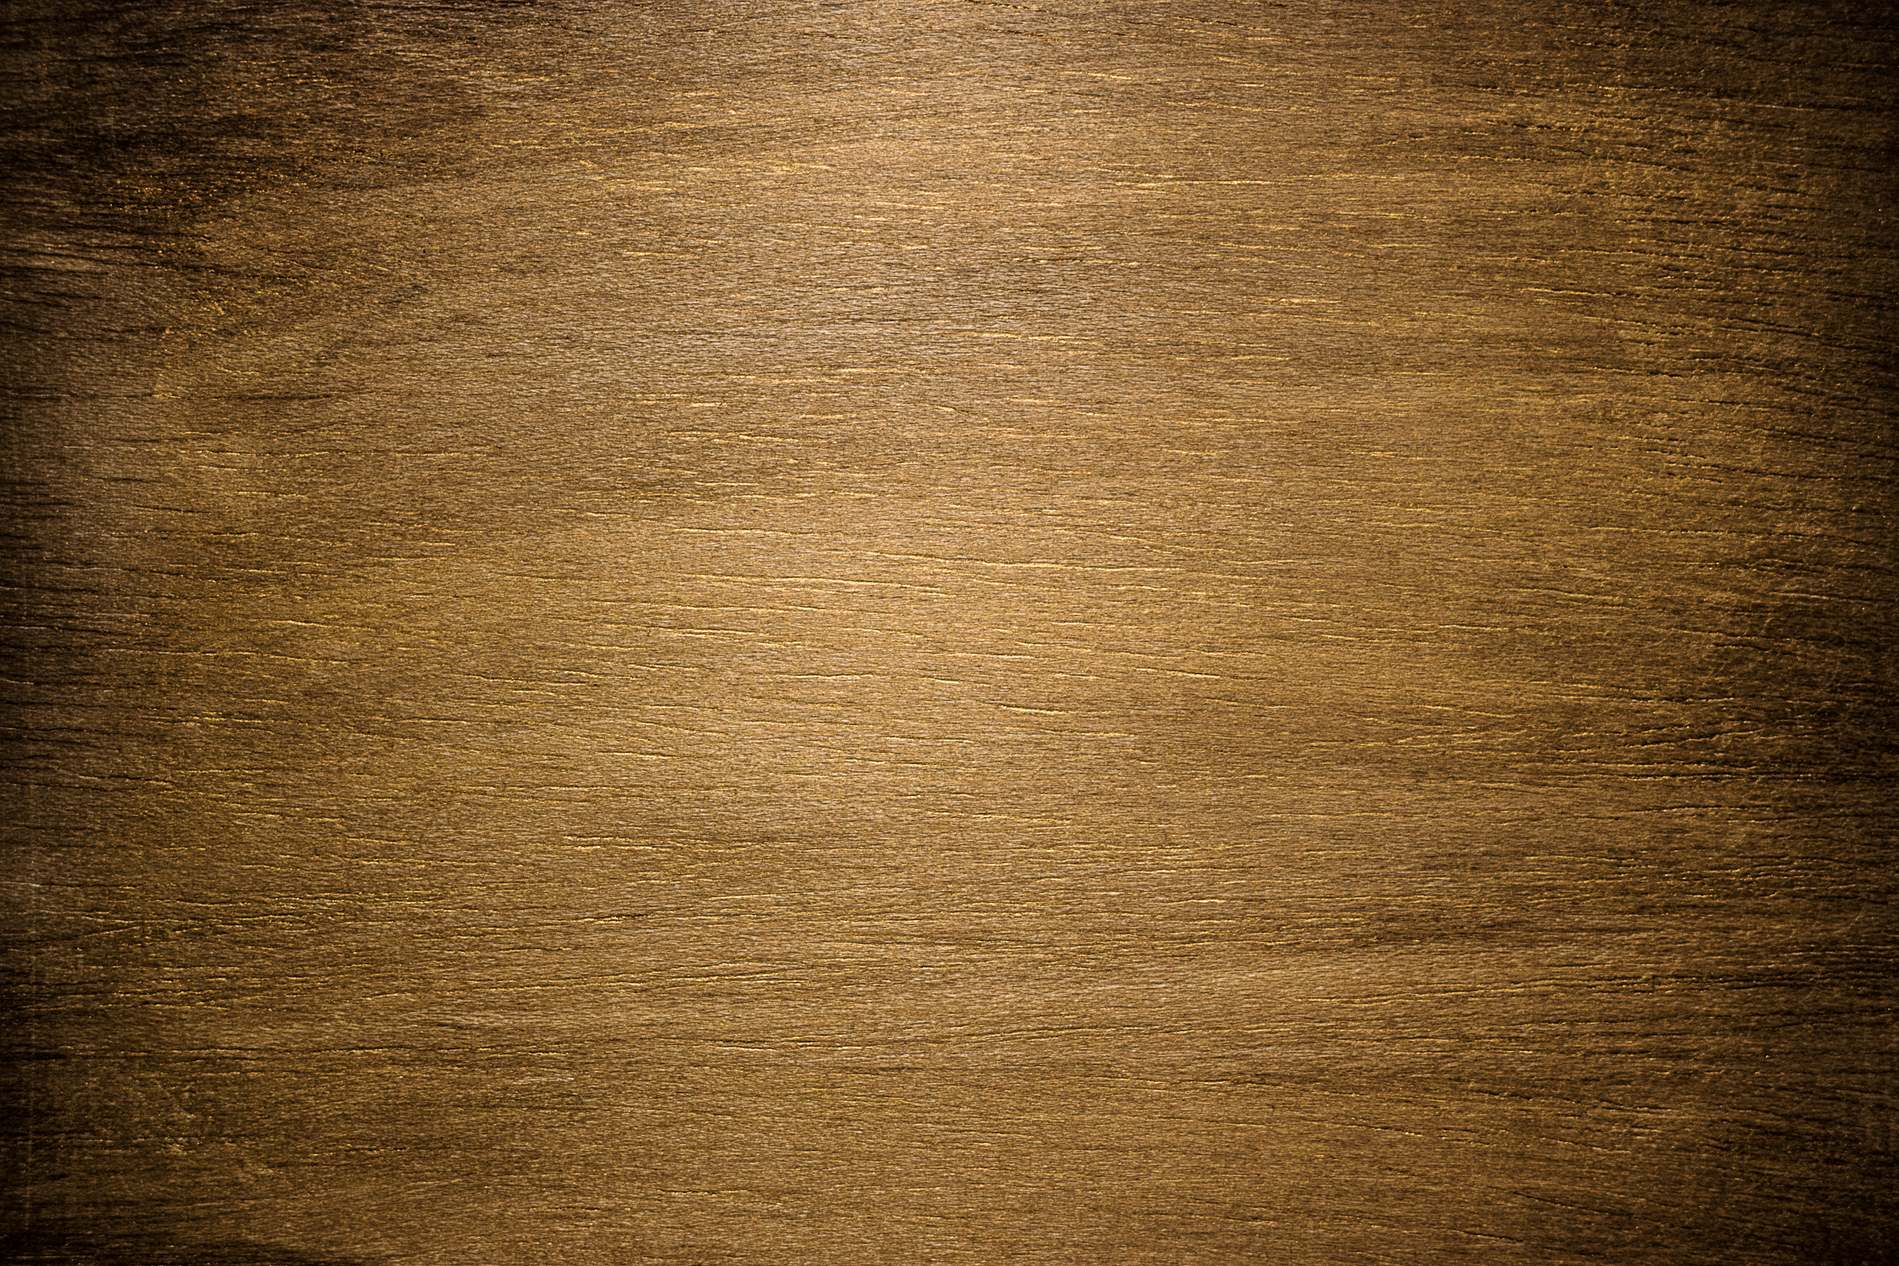 Dark Vintage Wood Background Photohdx